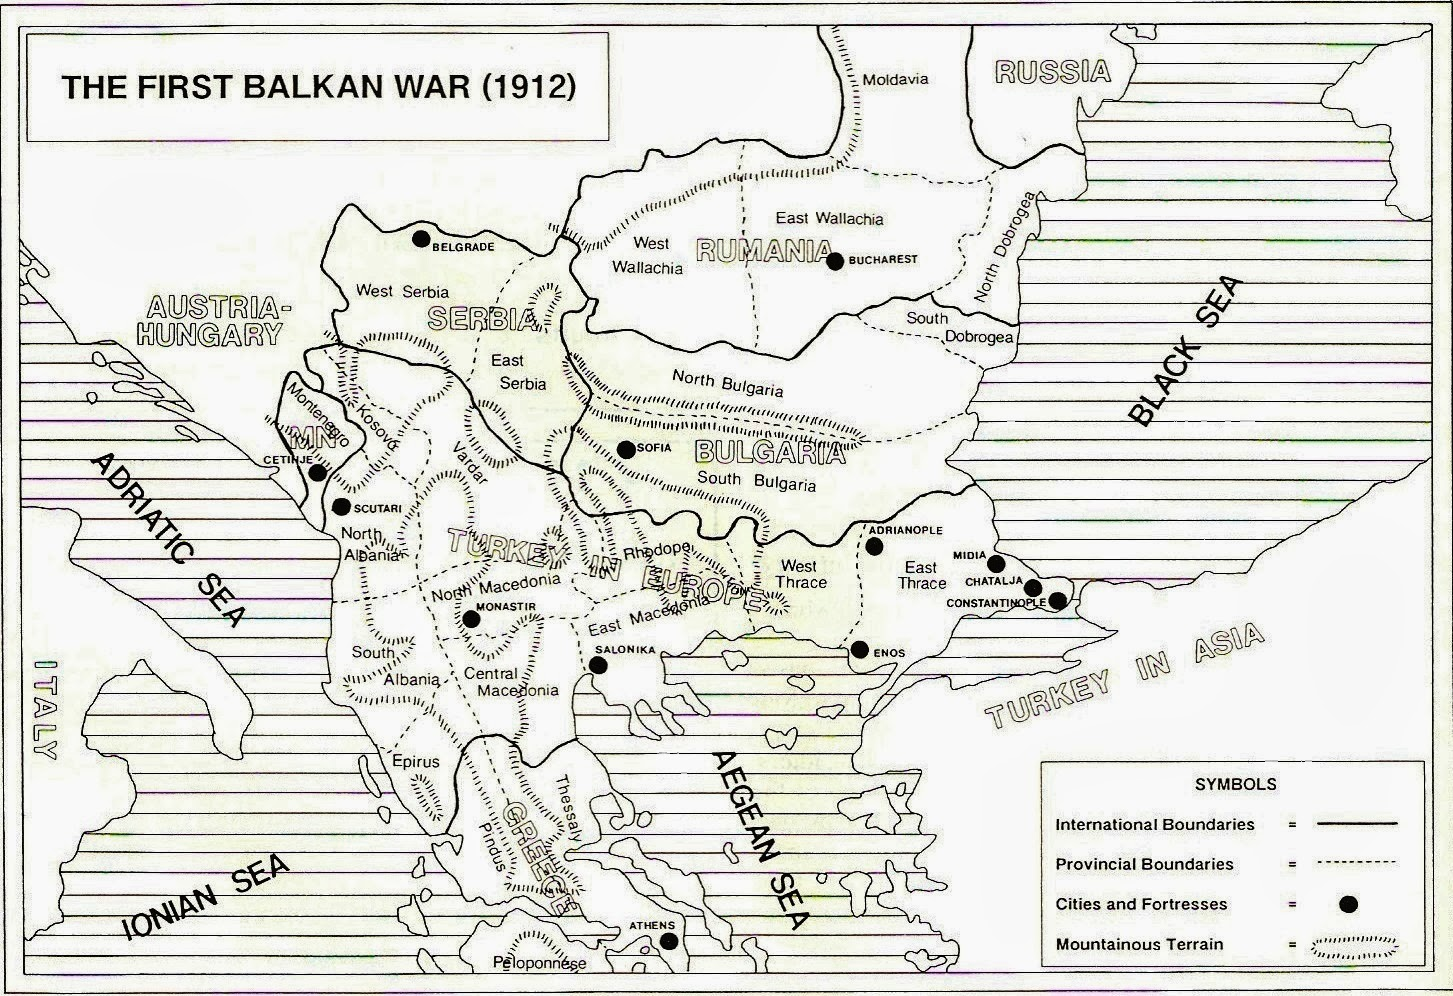 wargaming miscellany  matrix game  the balkan wars